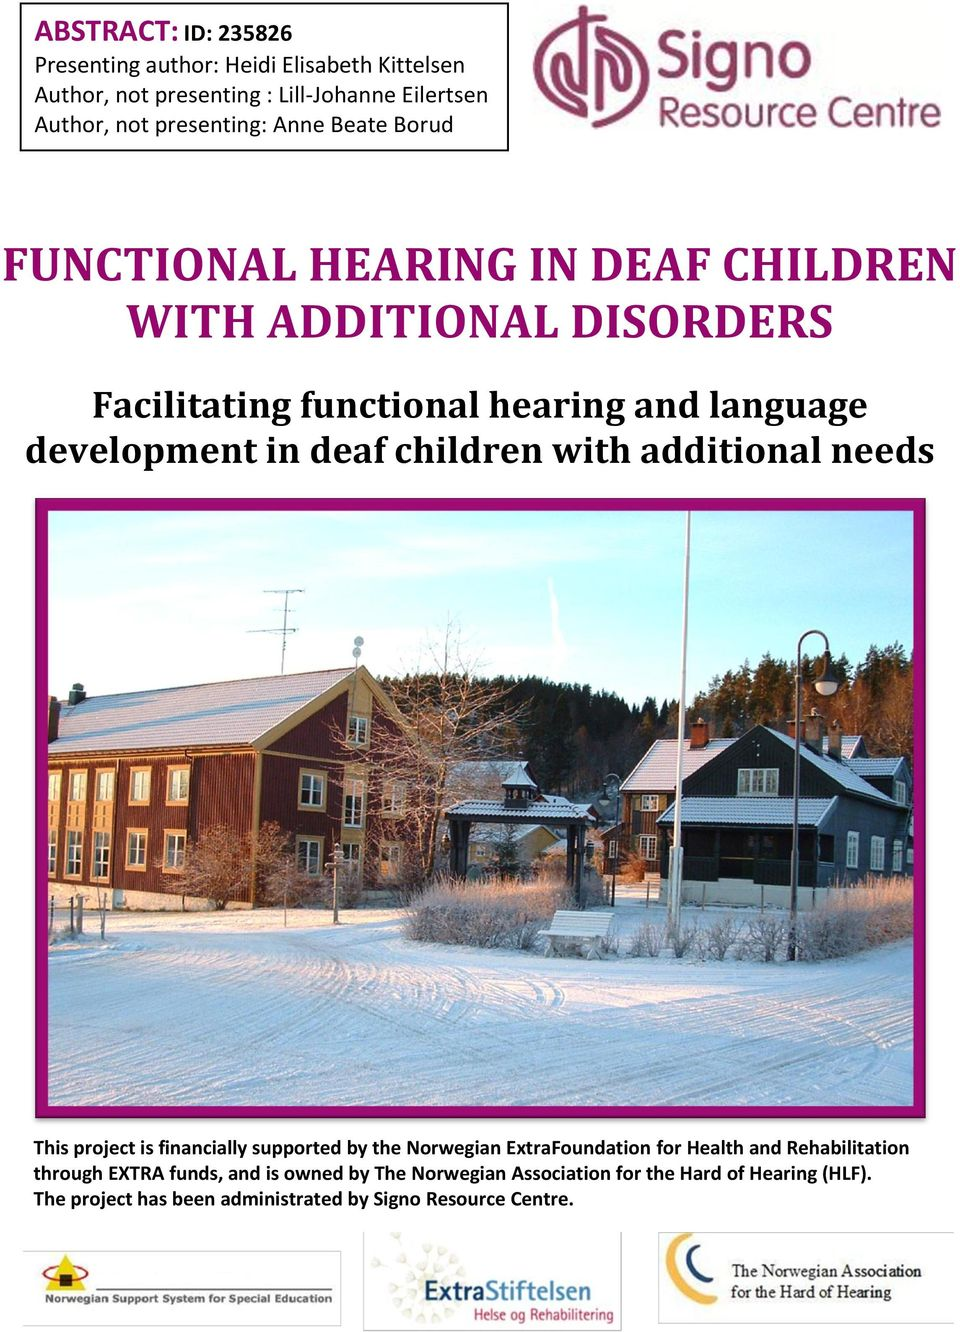 deaf children with additional needs This project is financially supported by the Norwegian ExtraFoundation for Health and Rehabilitation